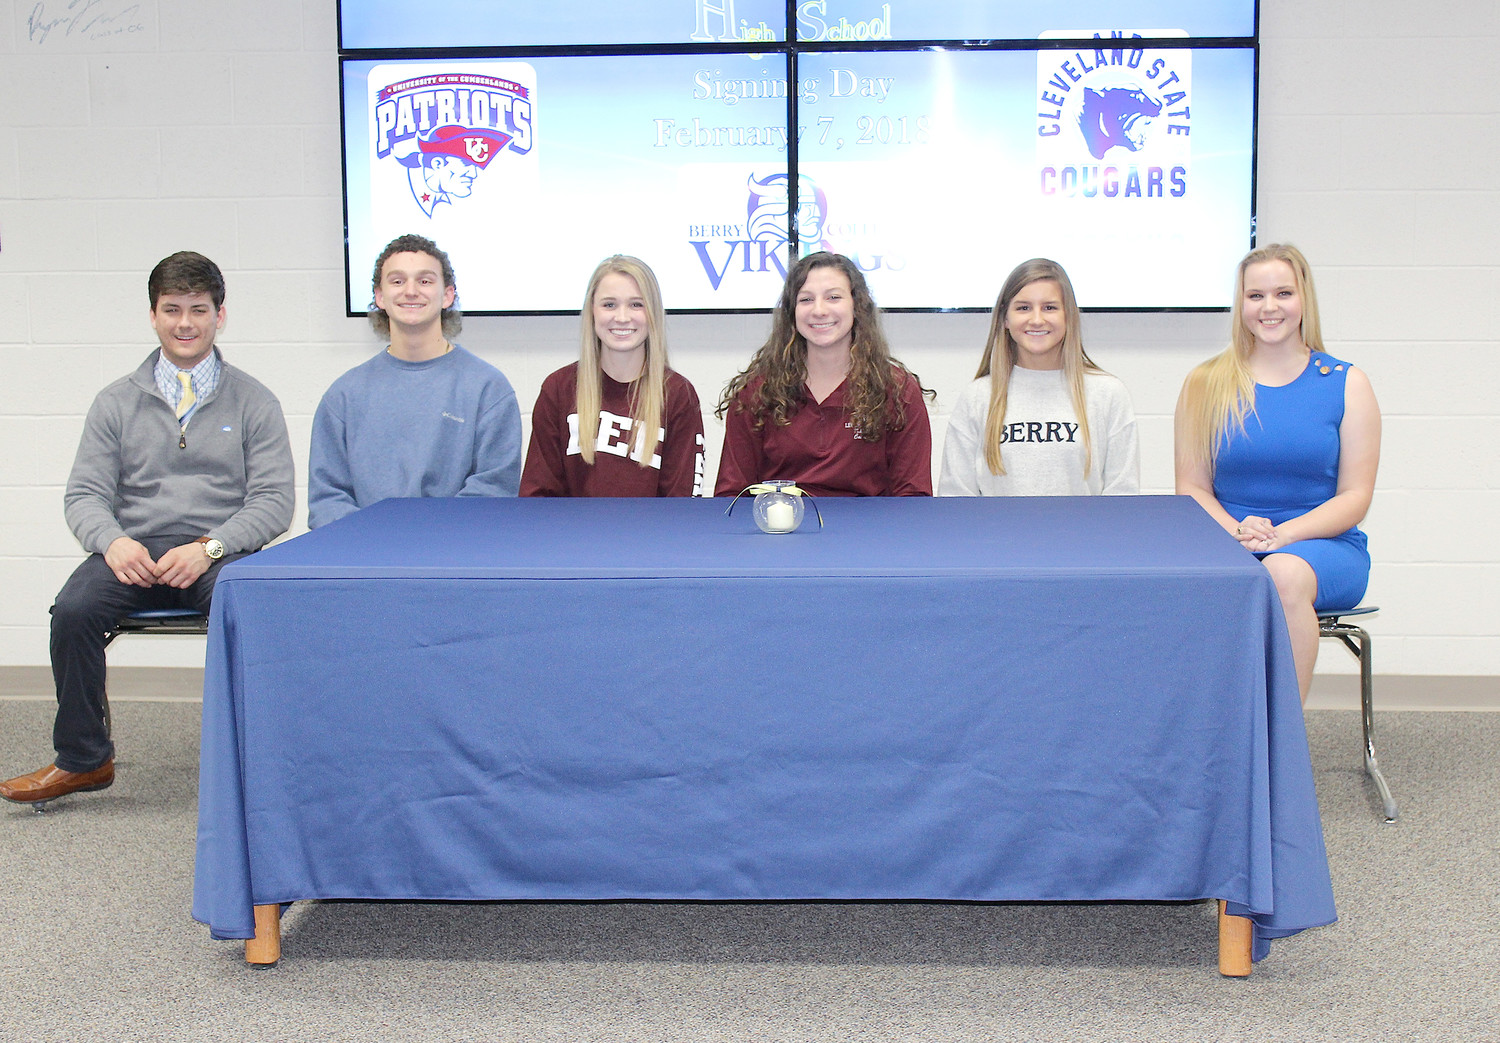 WALKER VALLEY HIGH SCHOOL celebrated National Signing Day with six Mustangs headed on to play collegiate sports. From left are Hunter Shamblin, University of the Cumberlands, baseball; Blake Peterson, Cleveland State Community College, baseball; Taylor Ellis, Lee University, soccer; Caitlin Dickson, Lee University, soccer; Lauren Caylor, Berry College, soccer; and Miranda Young, Tennessee Wesleyan University, softball.